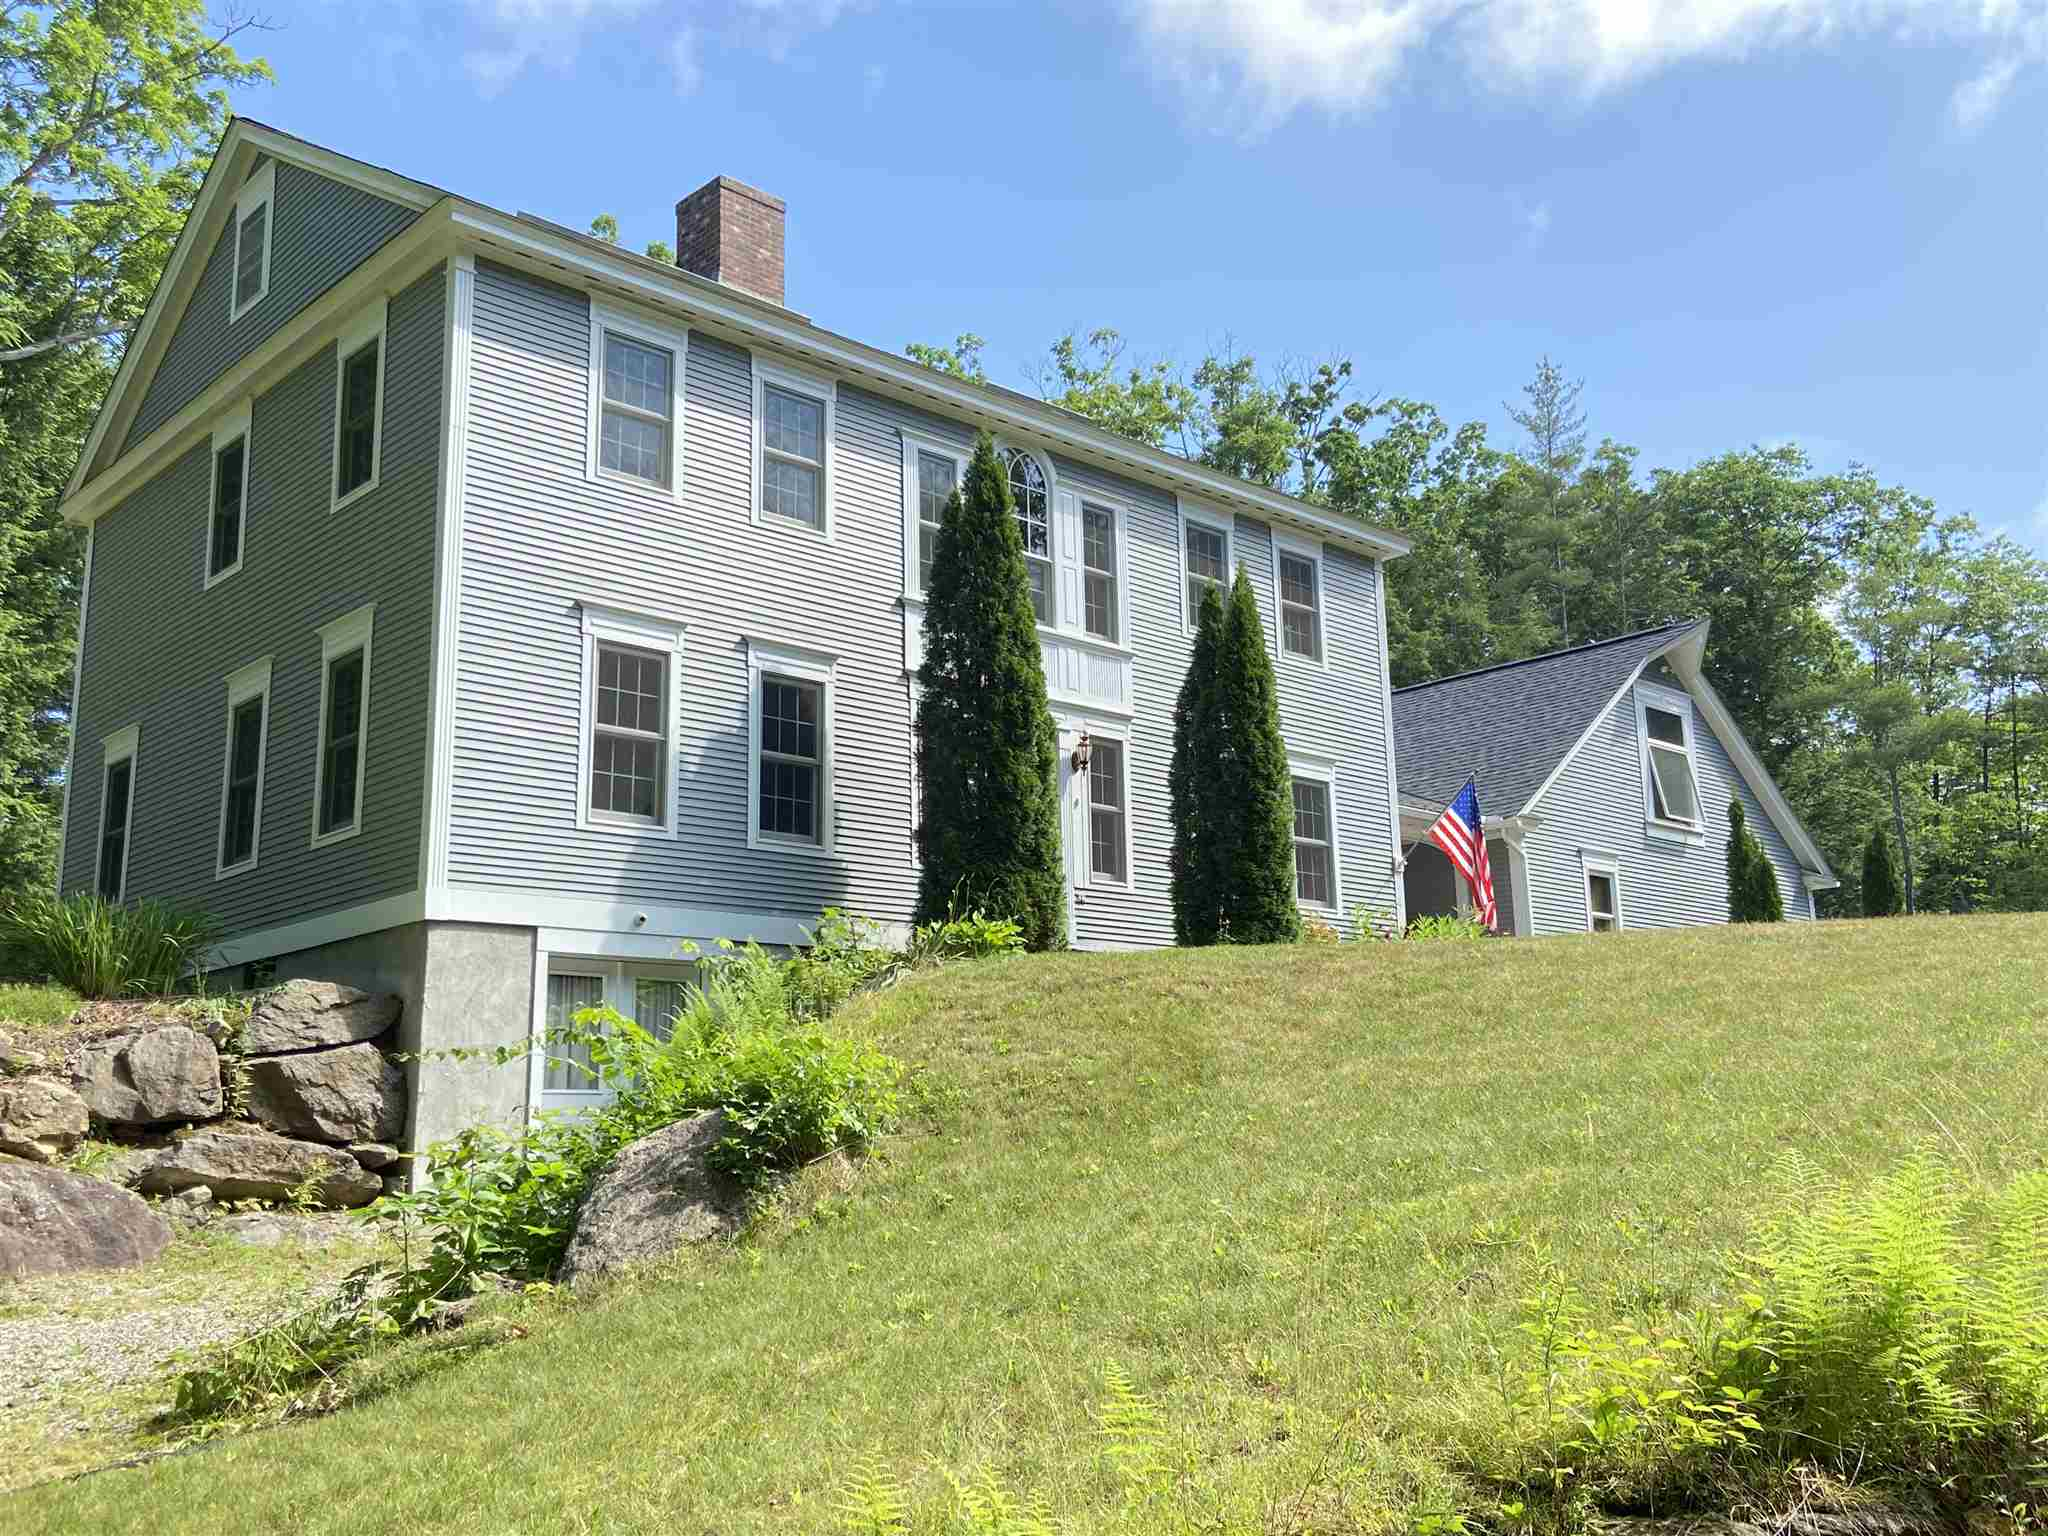 MLS 4822243: 178 Mellish Road, Langdon NH